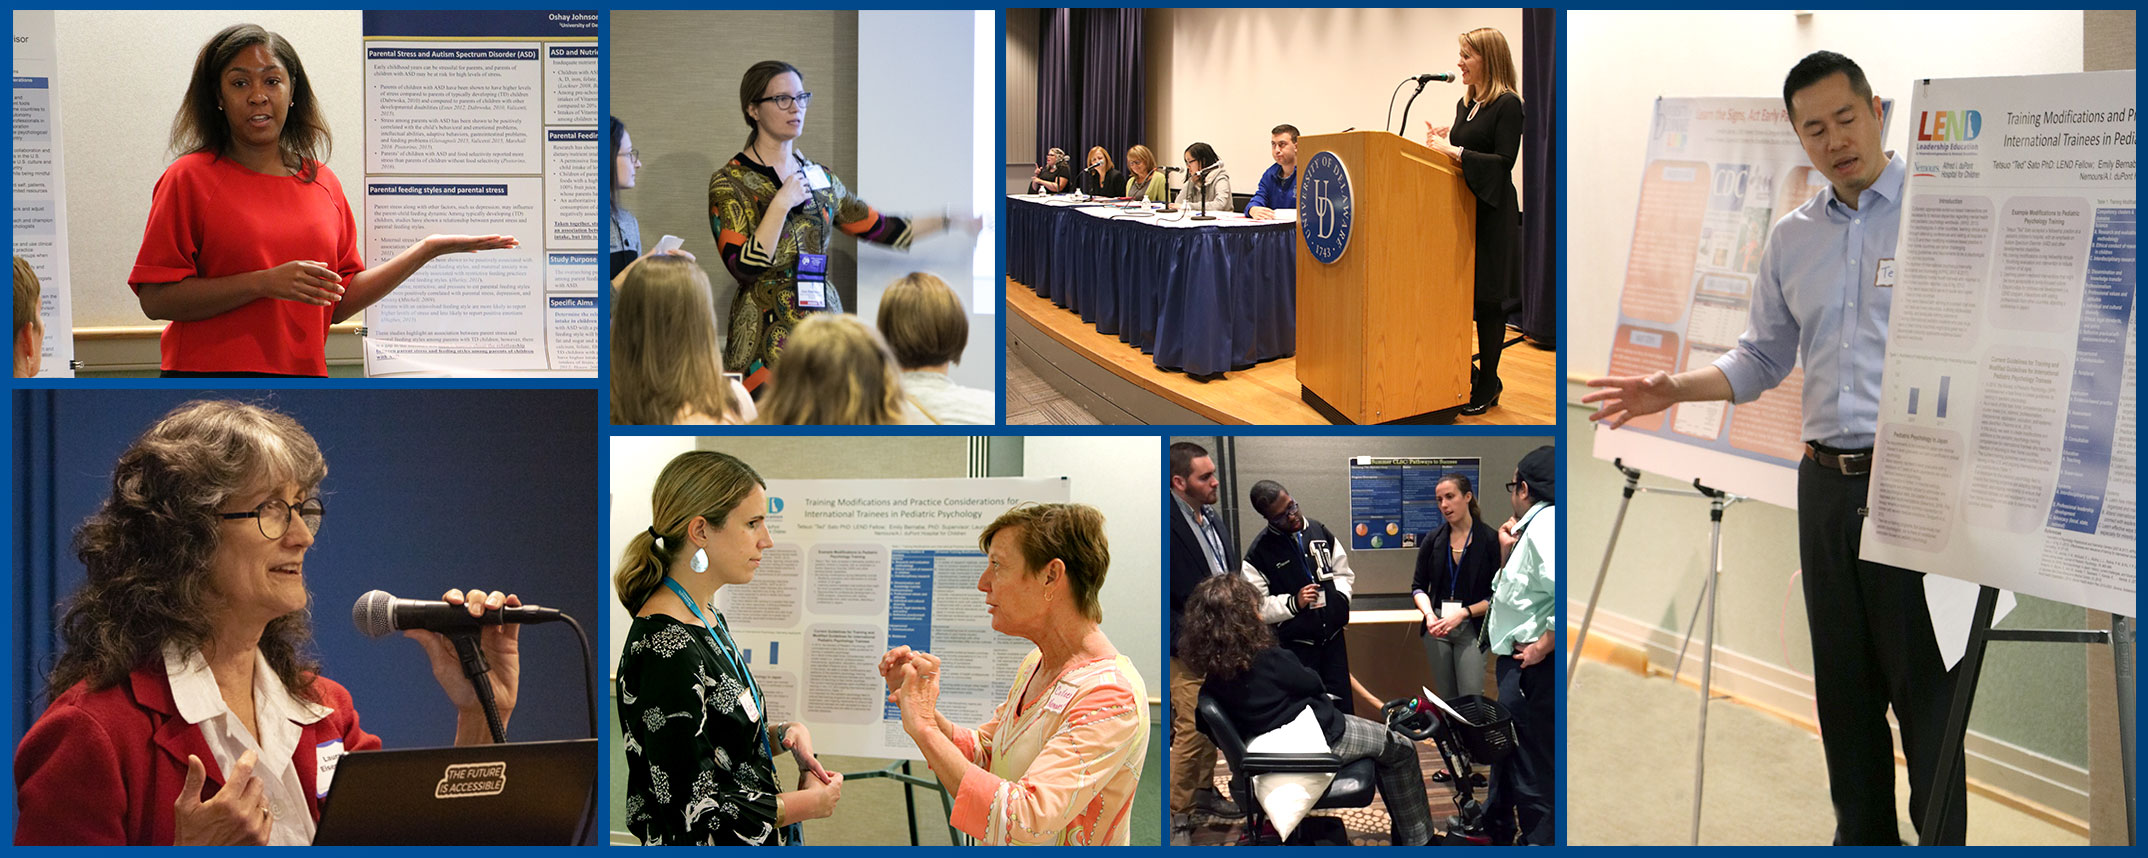 Various people with posters and presentations in a collage